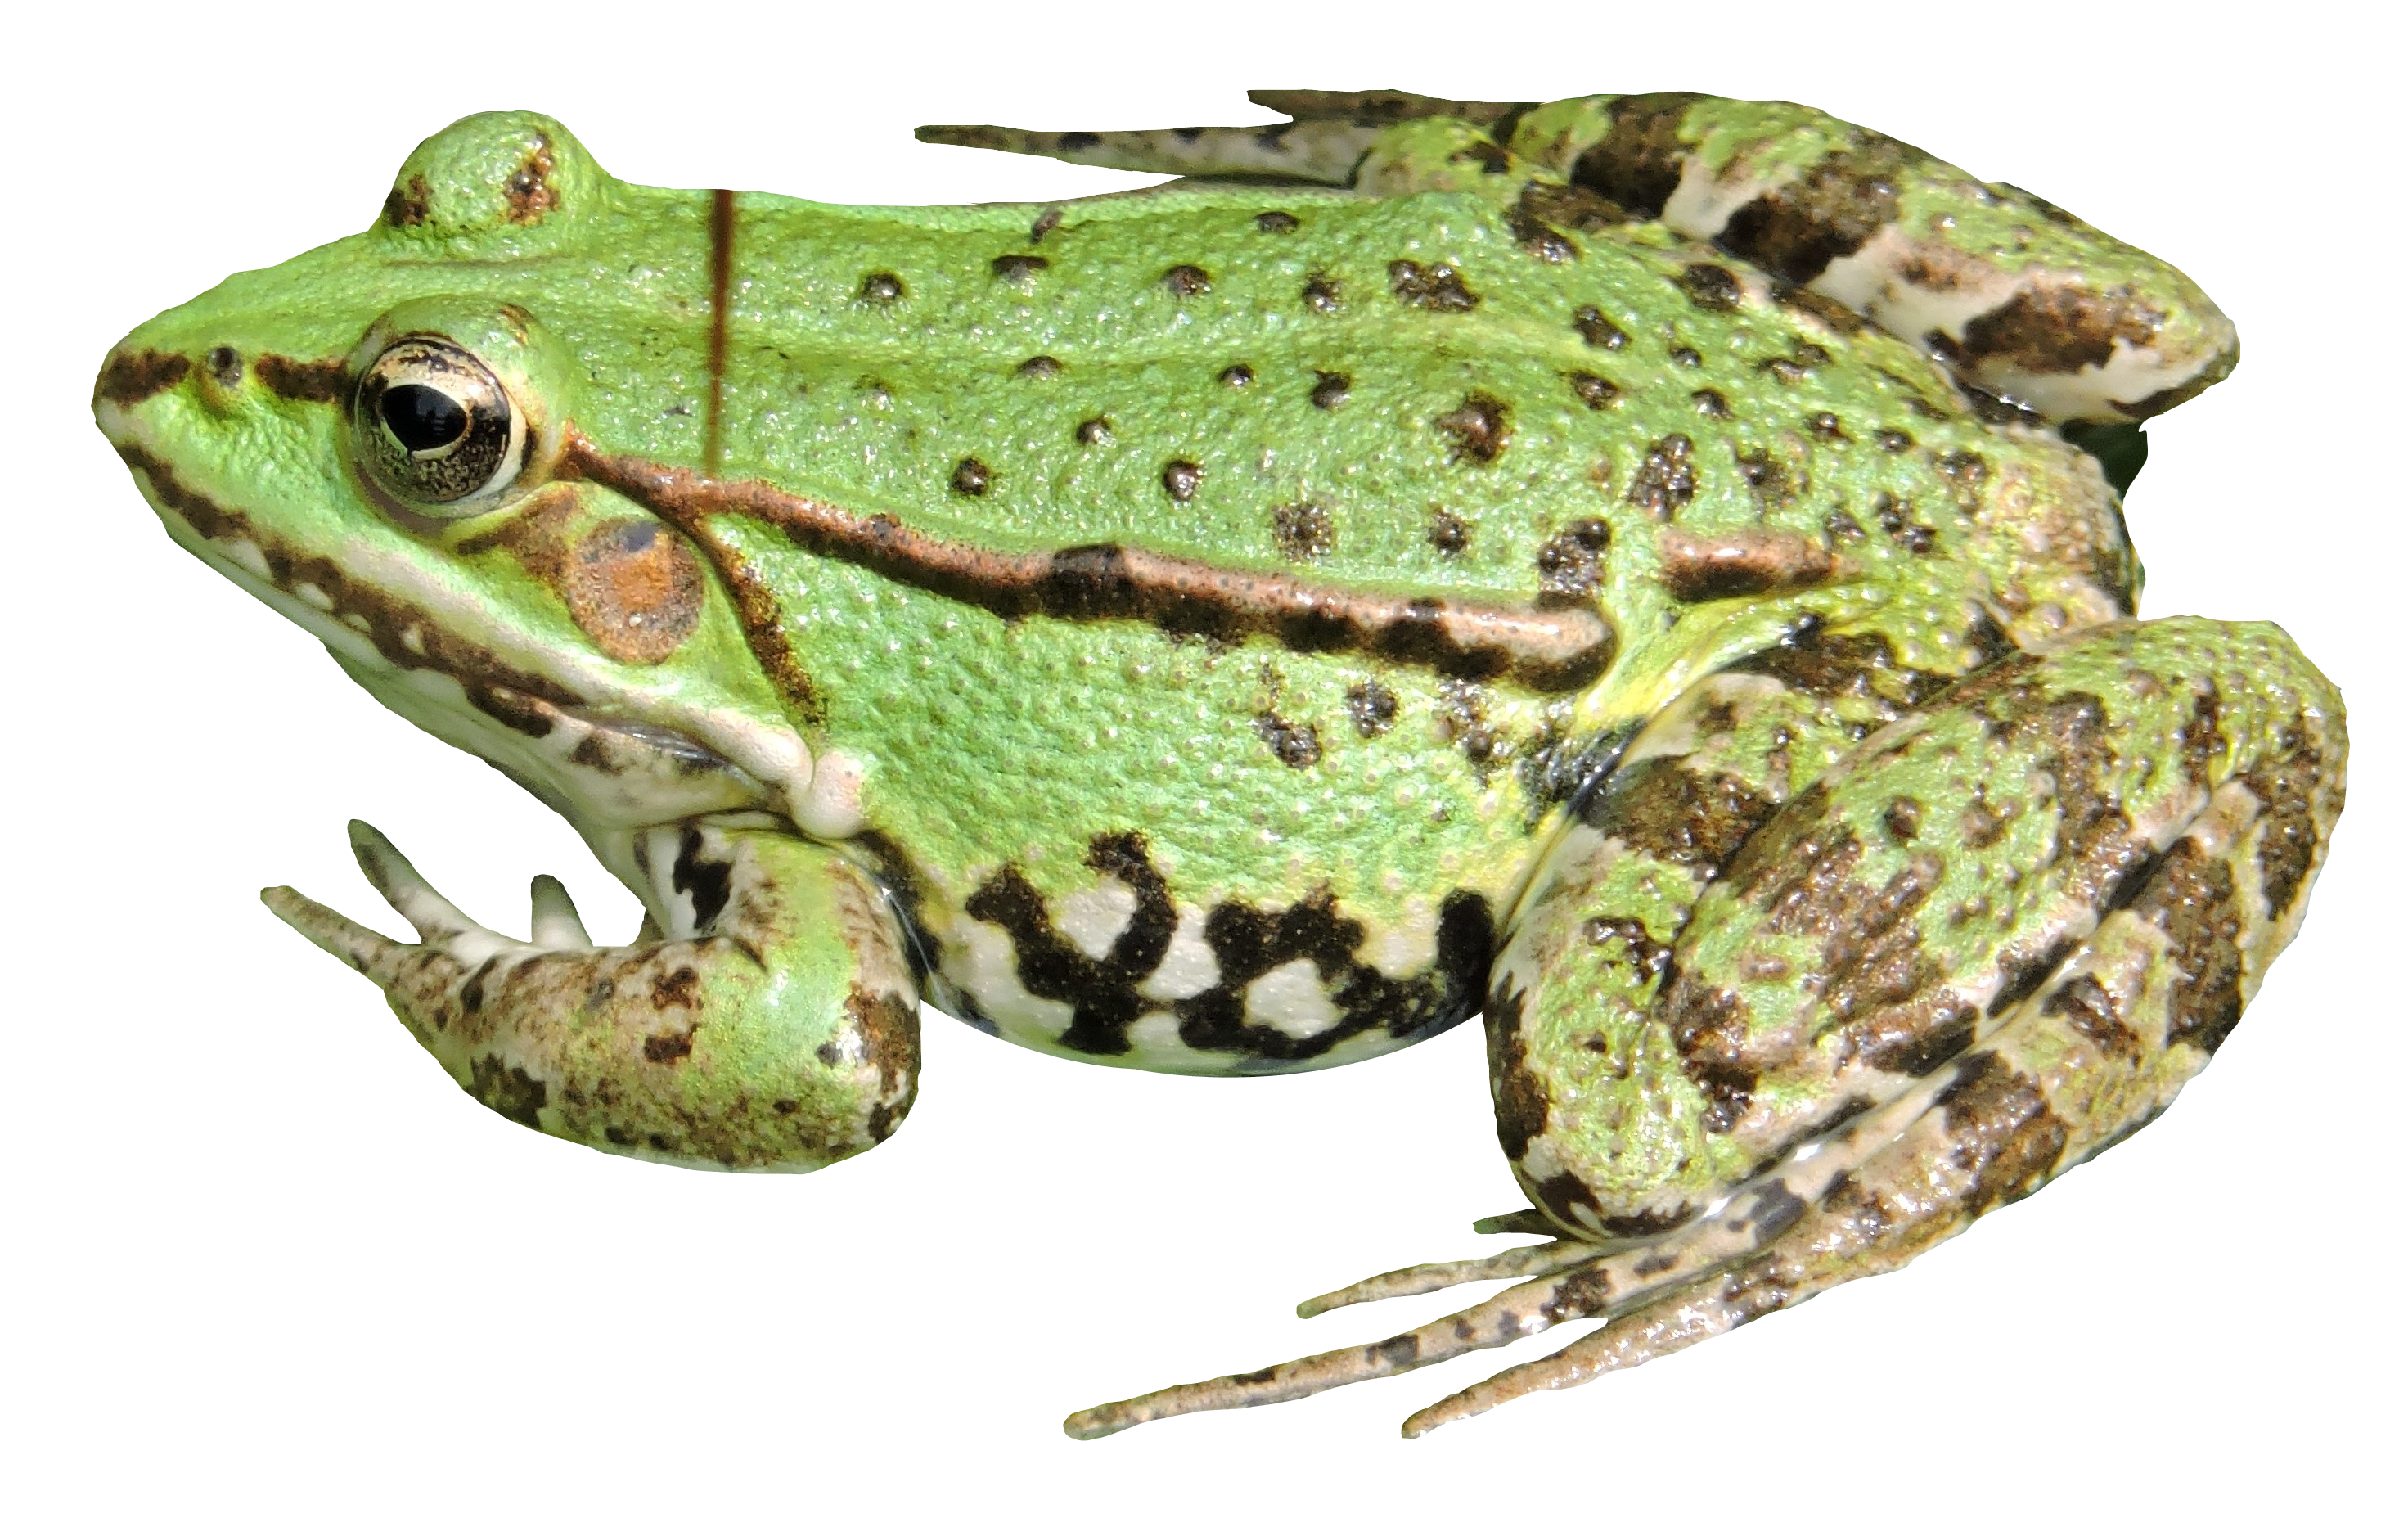 Frog Transparent Background